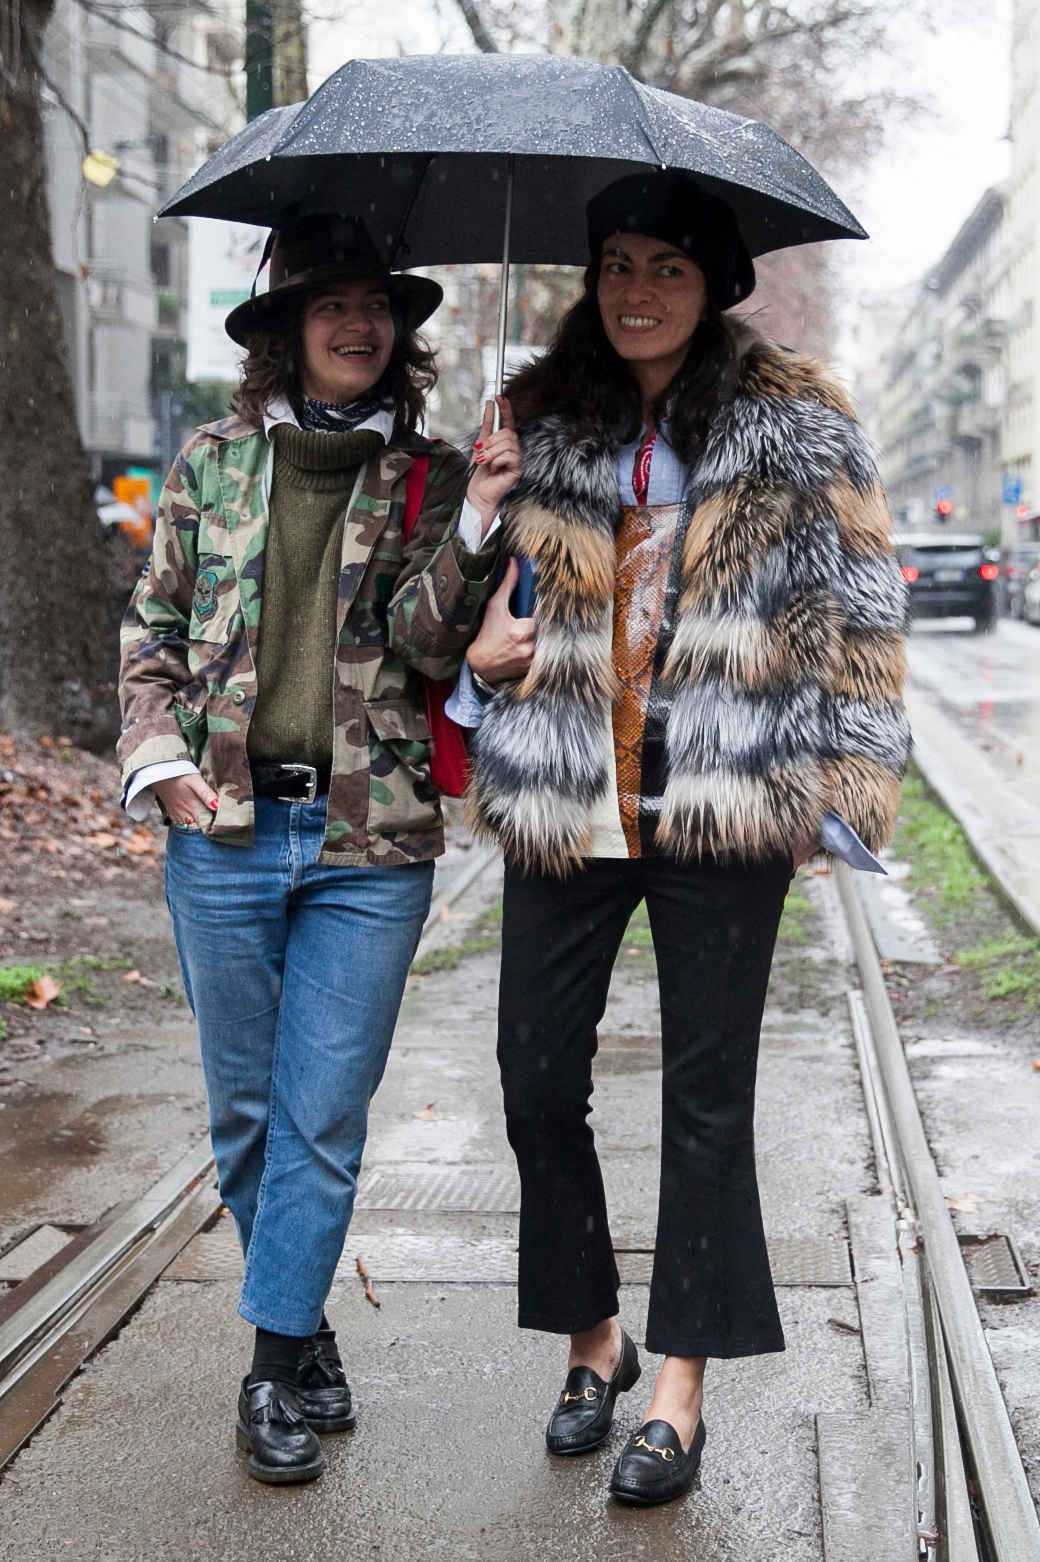 Our favorite street style images from the past four days of Milan Fashion Week.